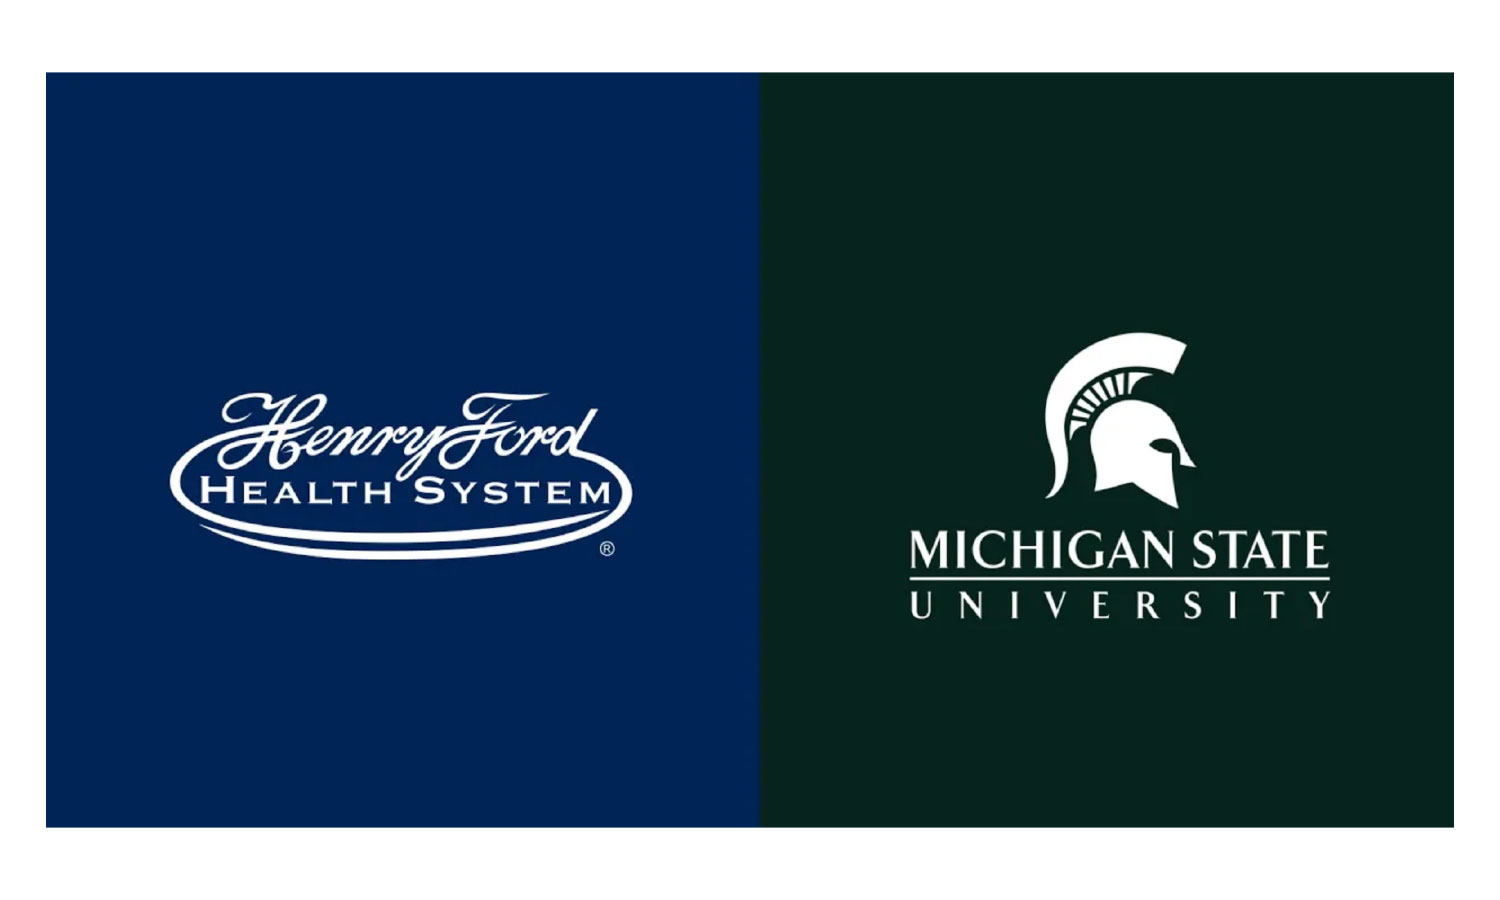 Henry Ford Health System logo and Michigan State University logo